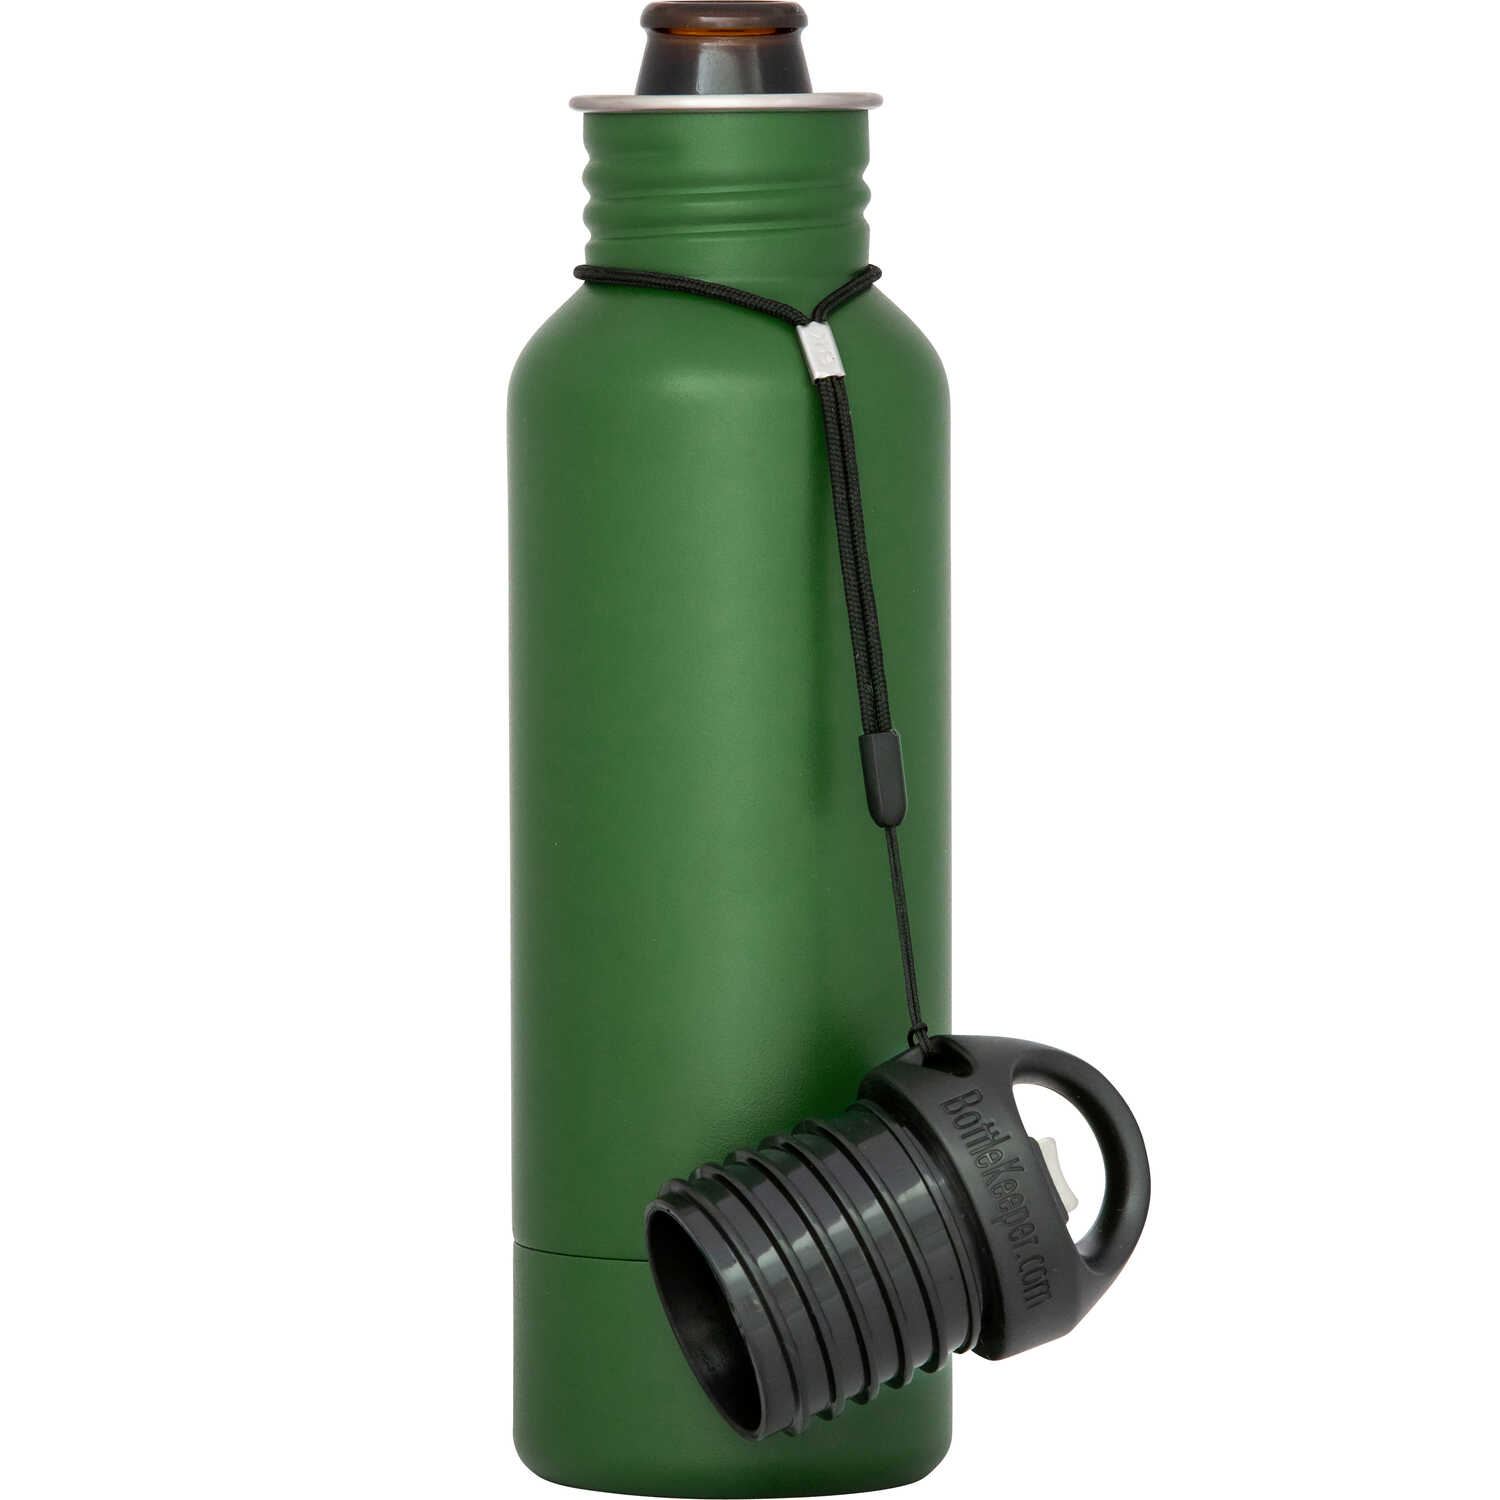 BottleKeeper  The Standard 2.0  Insulated Bottle Koozie  12 oz. Green  1 pk